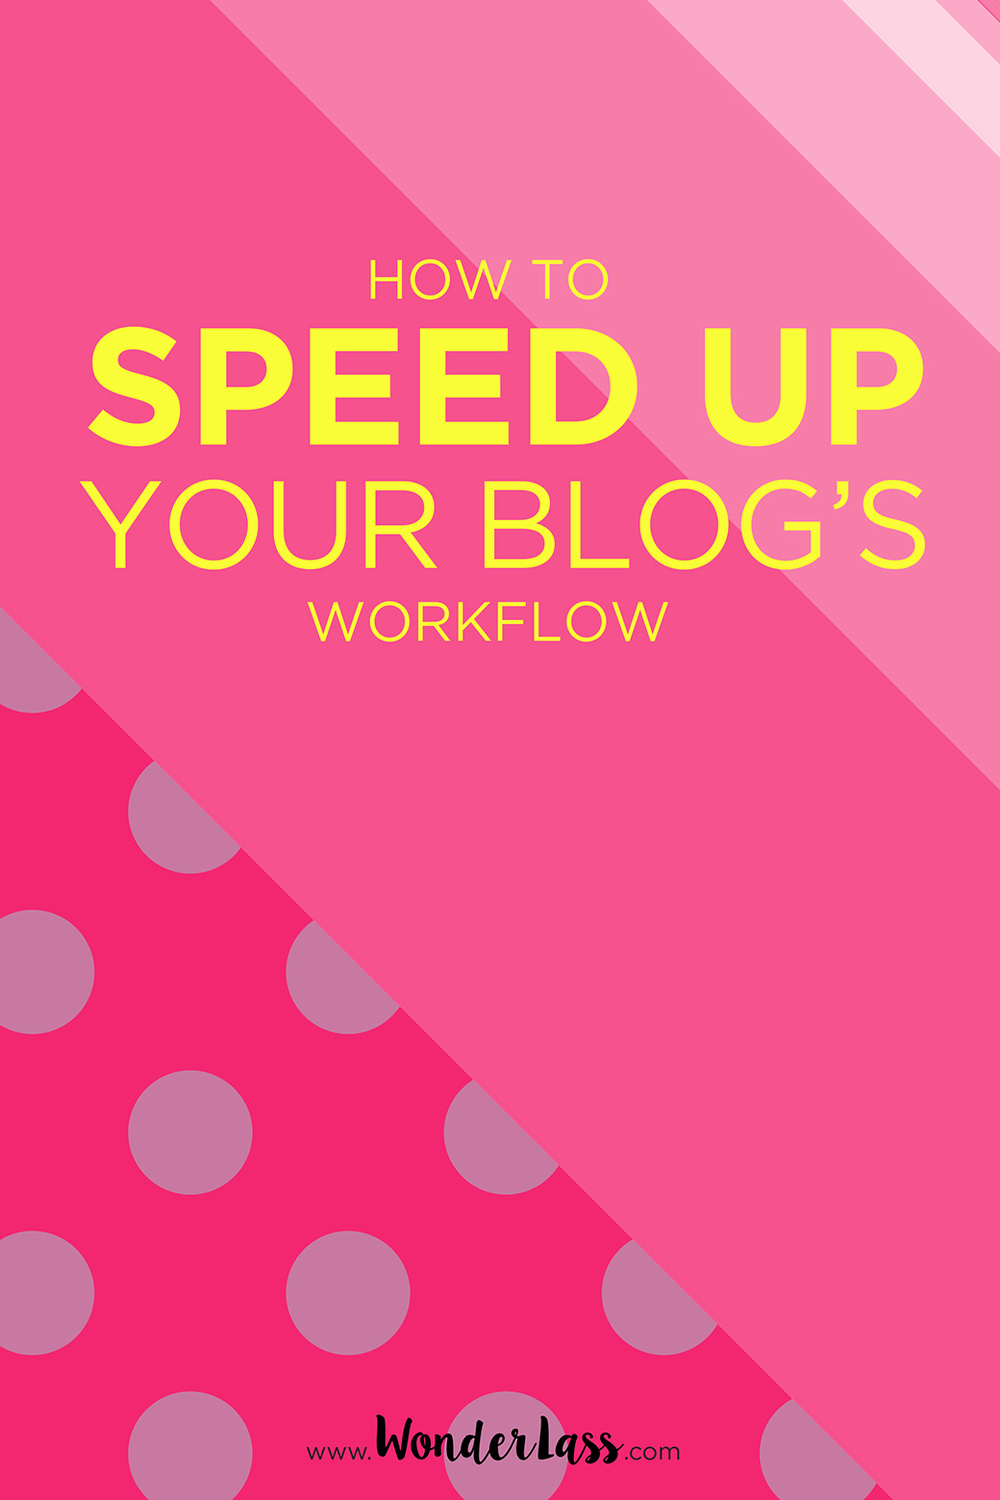 Shave hours off your blogging workflow with this awesome tool!